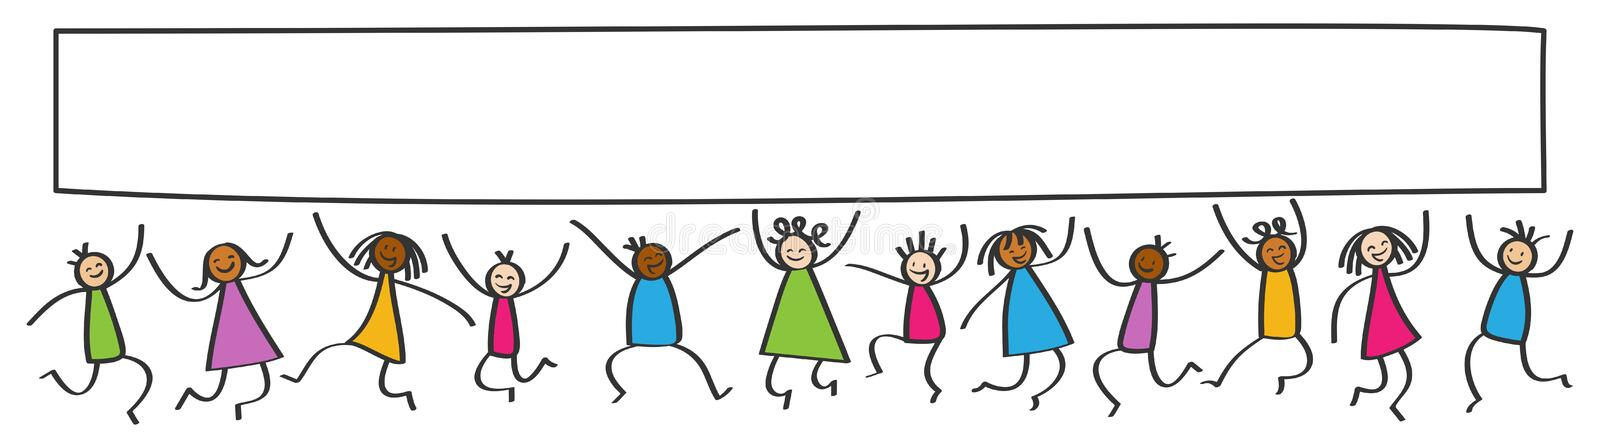 Simple stick figures banner, happy multicultural kids jumping, blank white poster board stock illustration